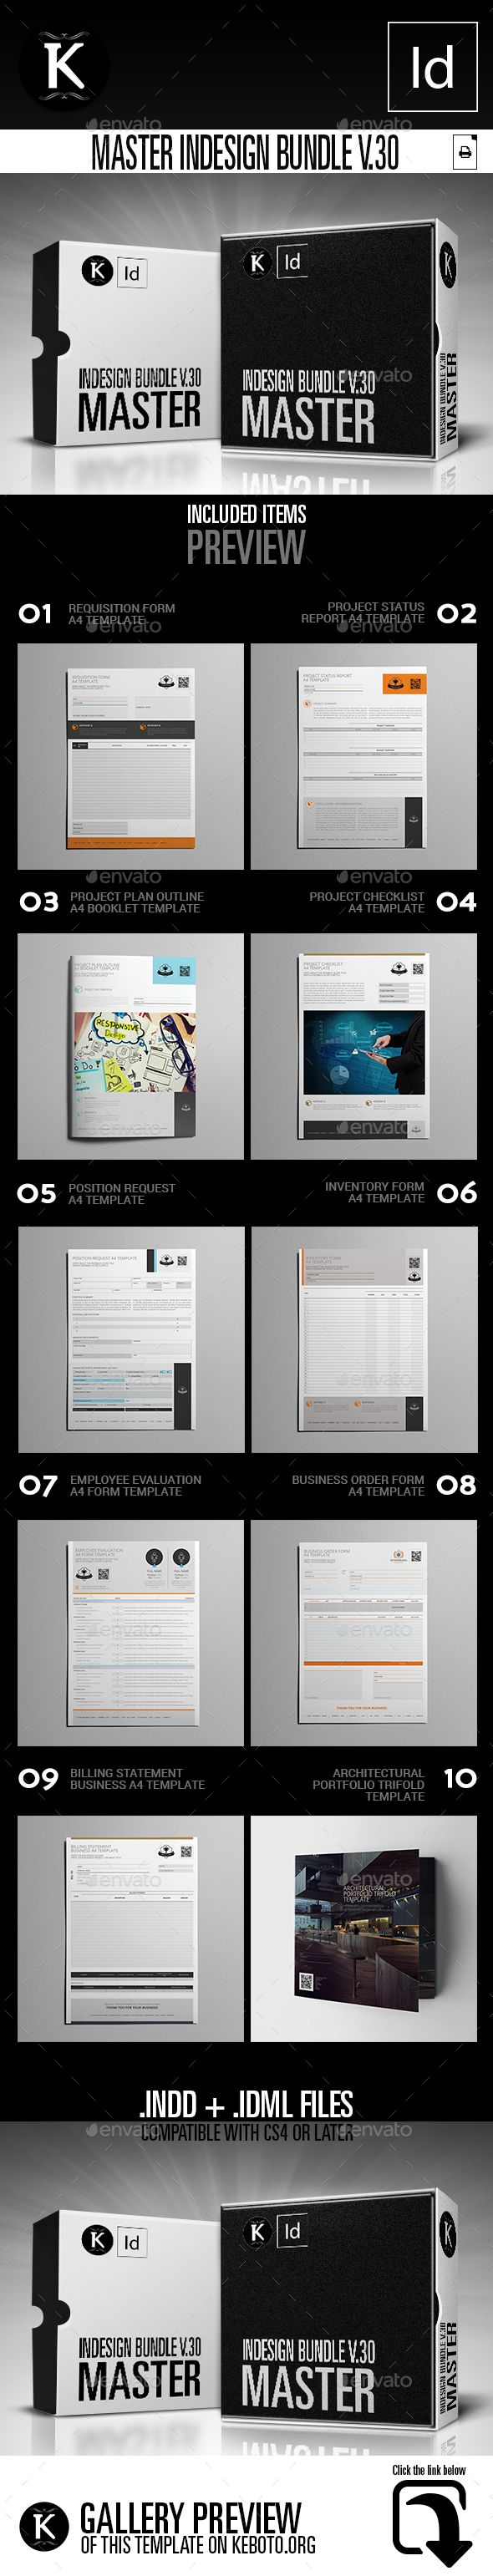 15762 best Templates images on Pinterest | Role models, Template and ...